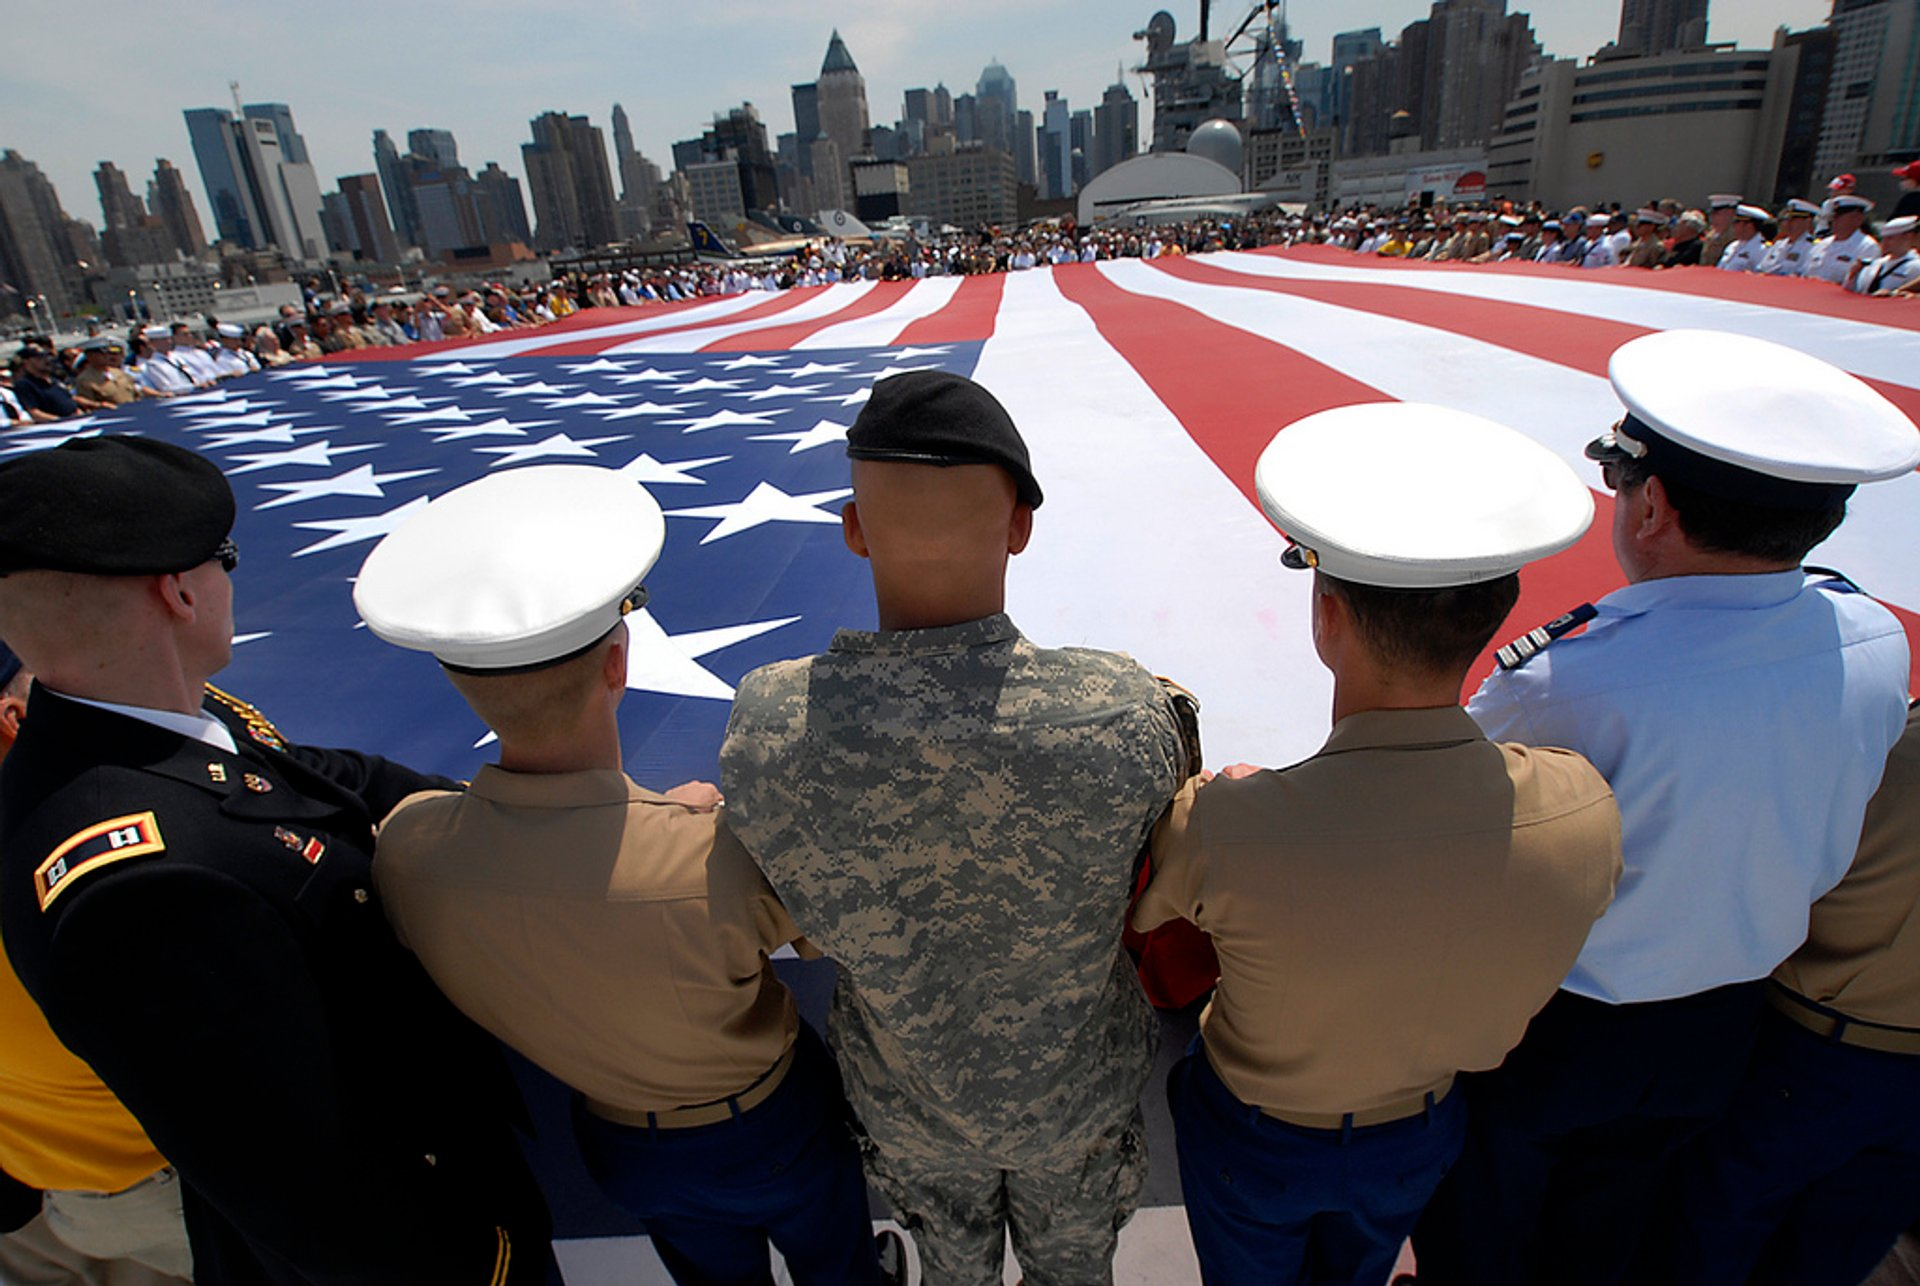 Fleet Week NYC (FWNY) in New York 2020 - Best Time